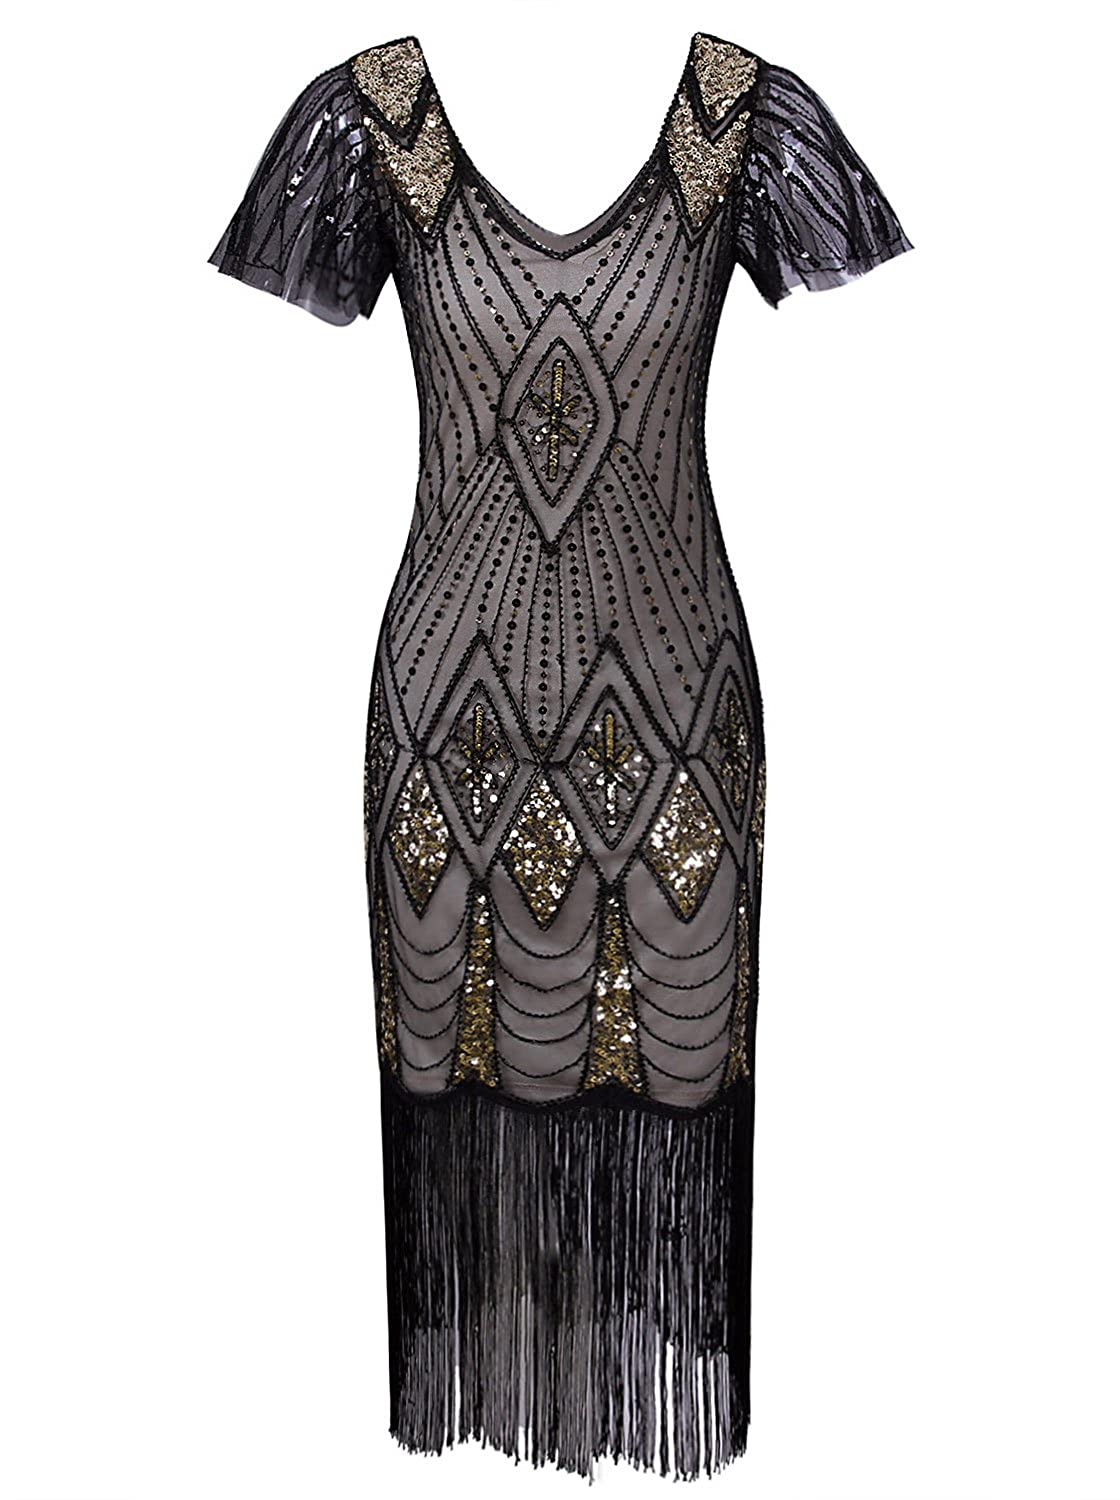 Top 10 wholesale 1920s Gatsby Style Dress - Chinabrands.com 9598f81e2cae4